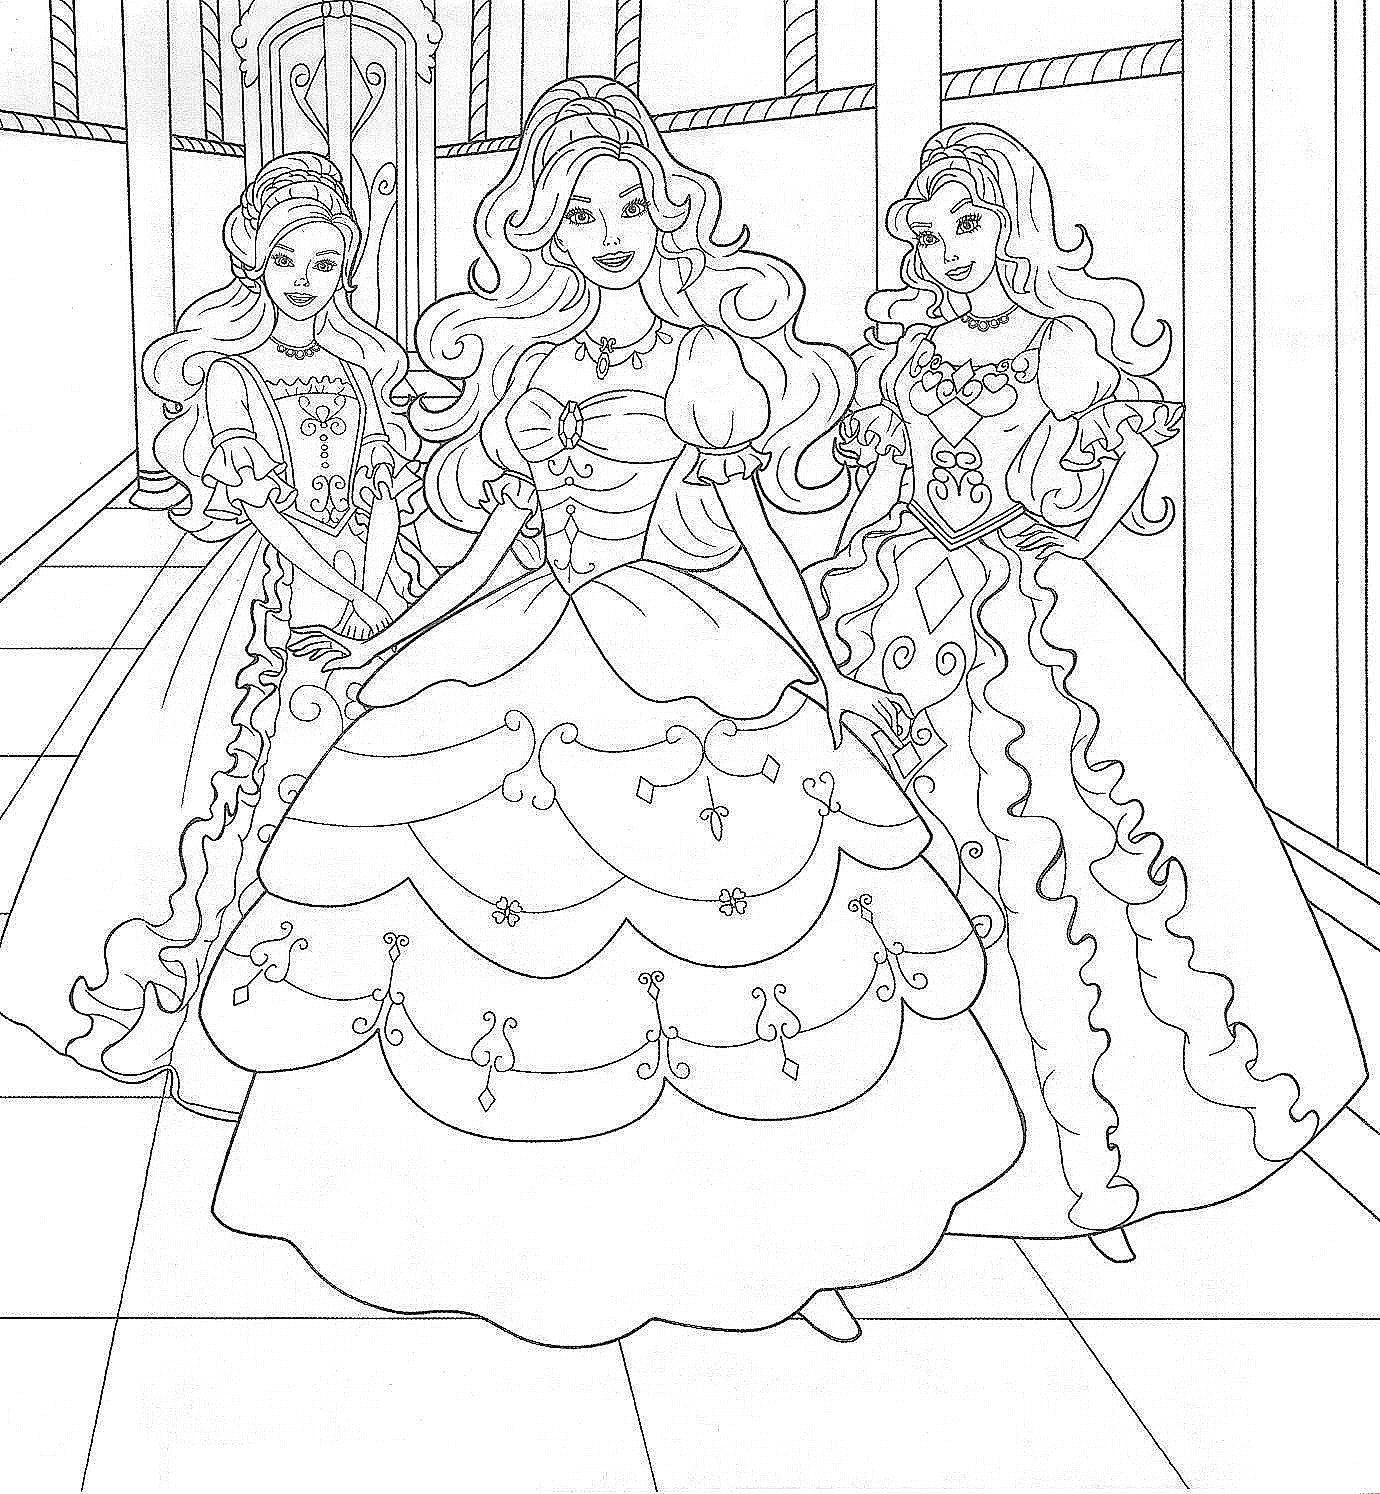 Coloring Ideas : Barbie Coloring Pages Girls Three Princess1 - Free Printable Barbie Coloring Pages